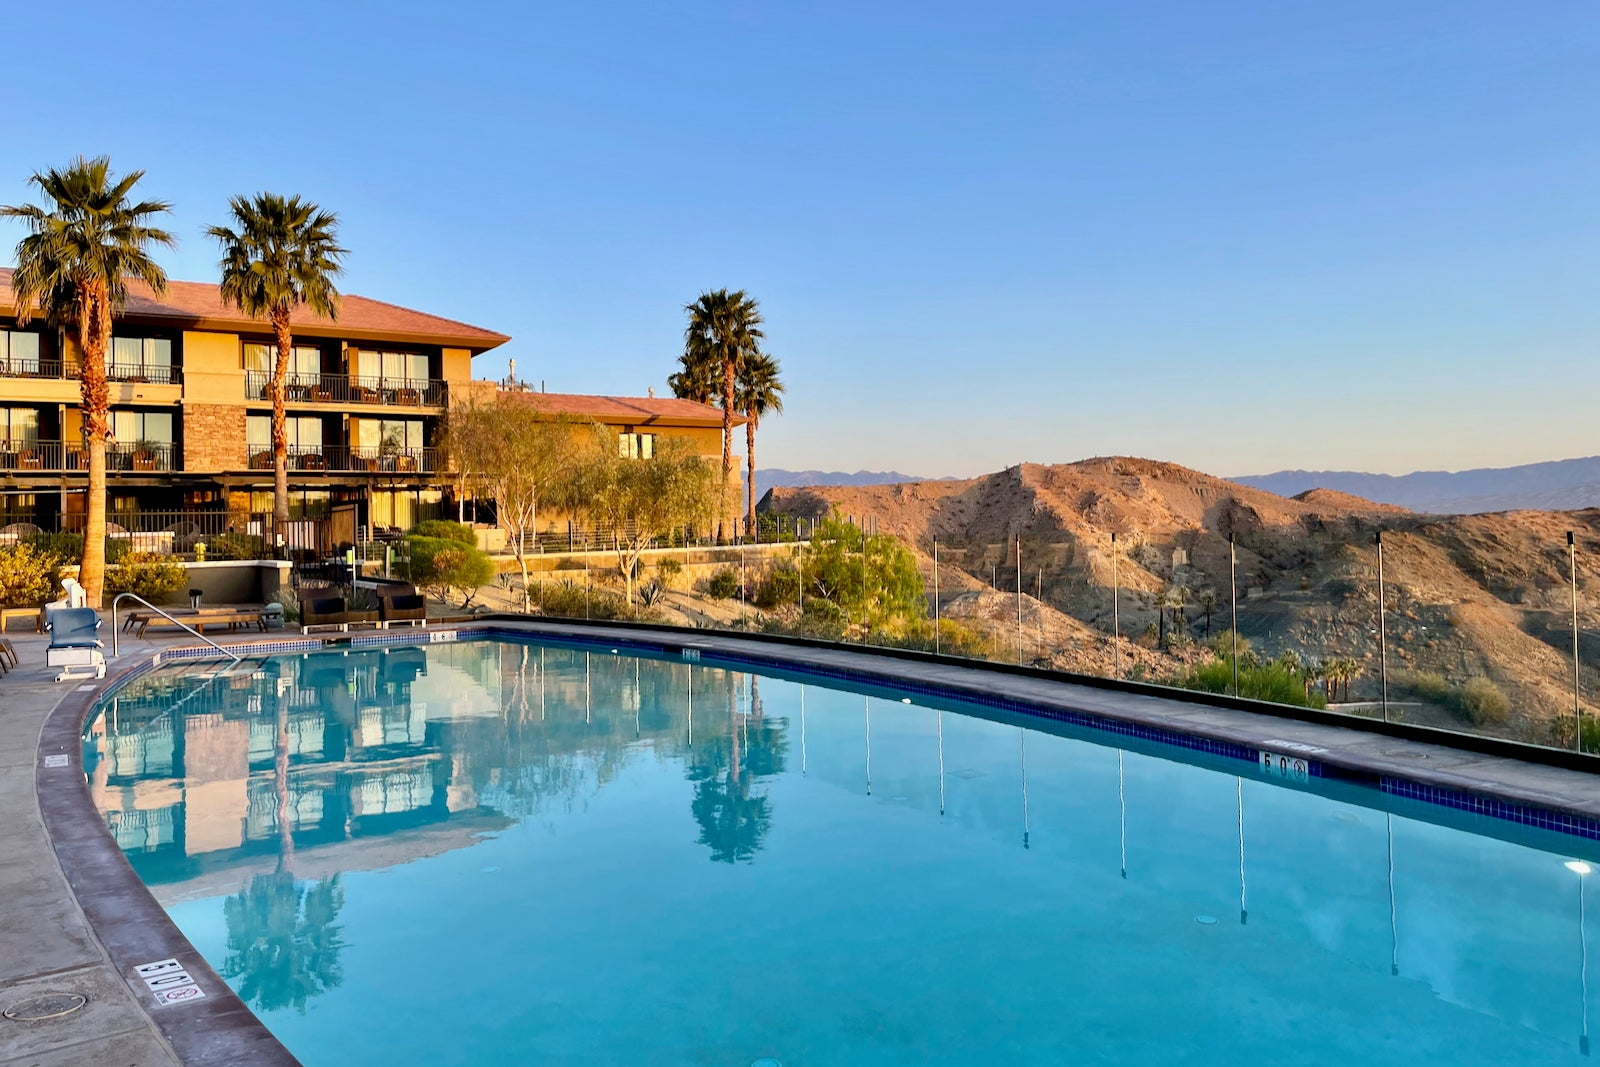 15 things to know about staying at The Ritz-Carlton, Rancho Mirage near Palm Springs - The Points Guy